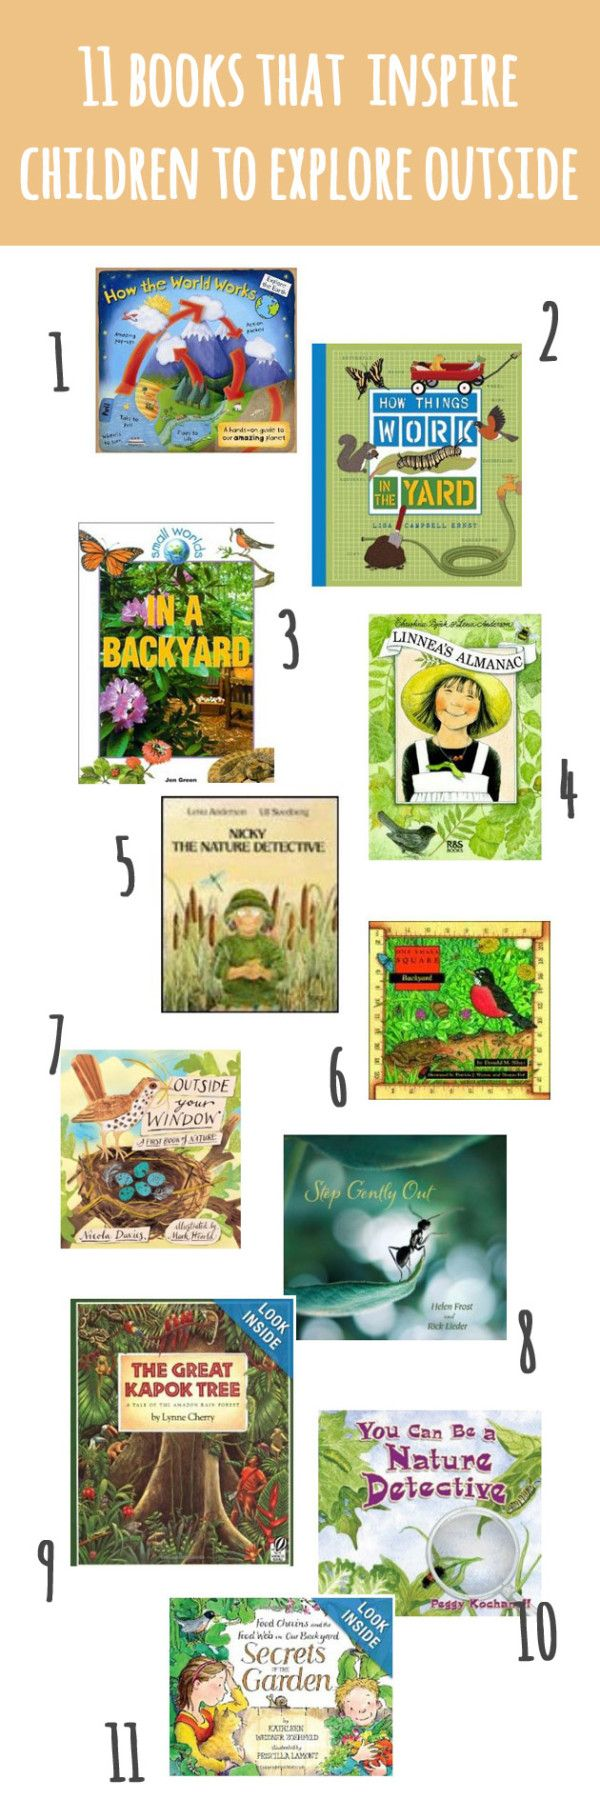 11 Picture Books that Inspire Children to Explore Outsideby playfullearning.  #Books #Kids #Nature